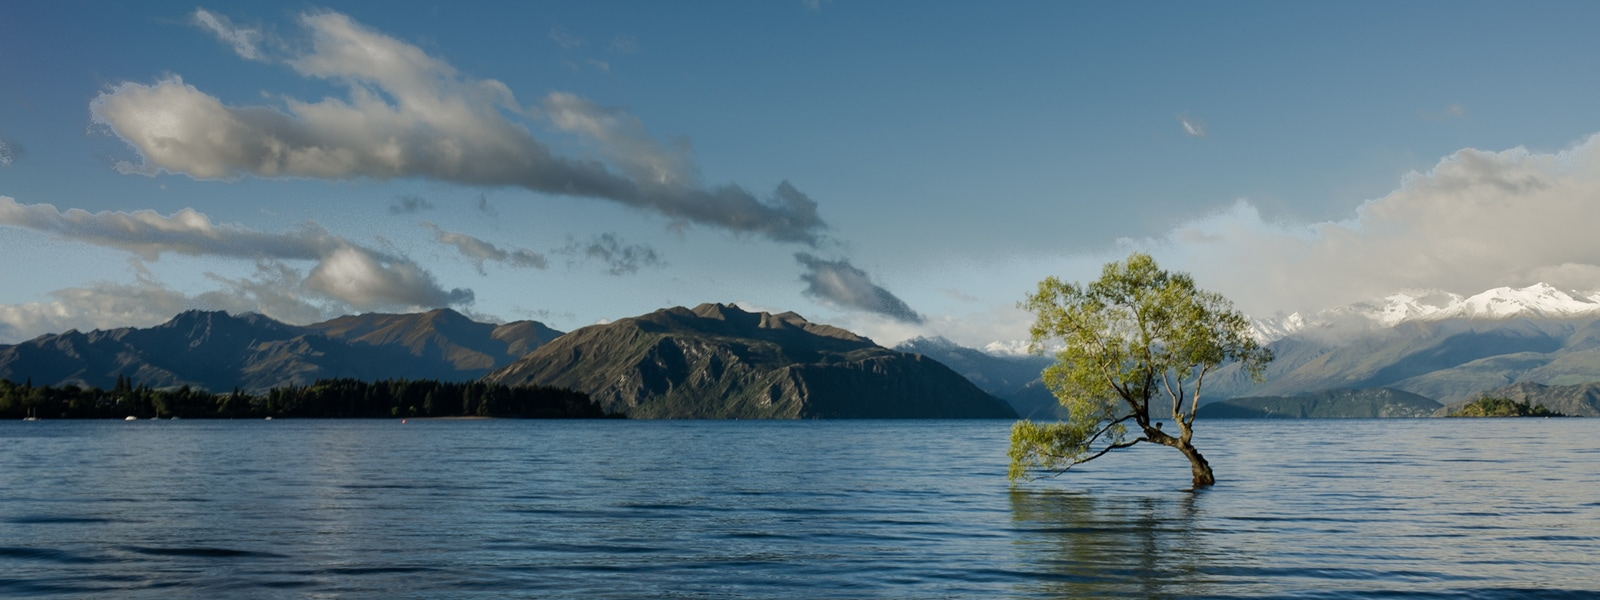 A solitary tree partially in water with a dramatic landscape behind it